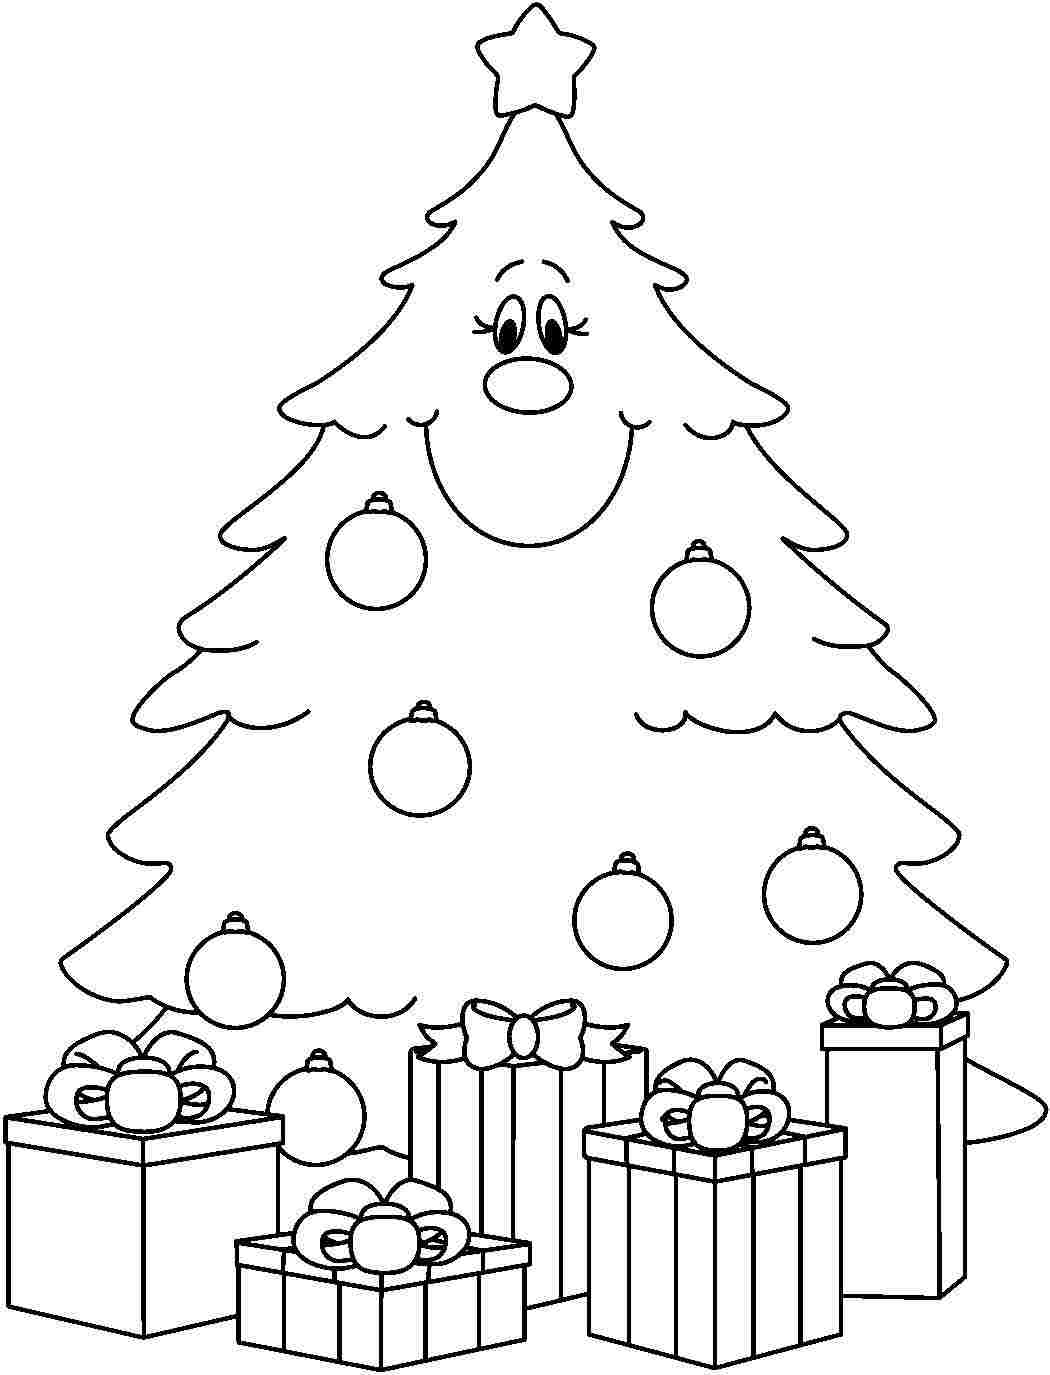 Christmas Tree Coloring Printable With Unique Presents Pages Collection Free